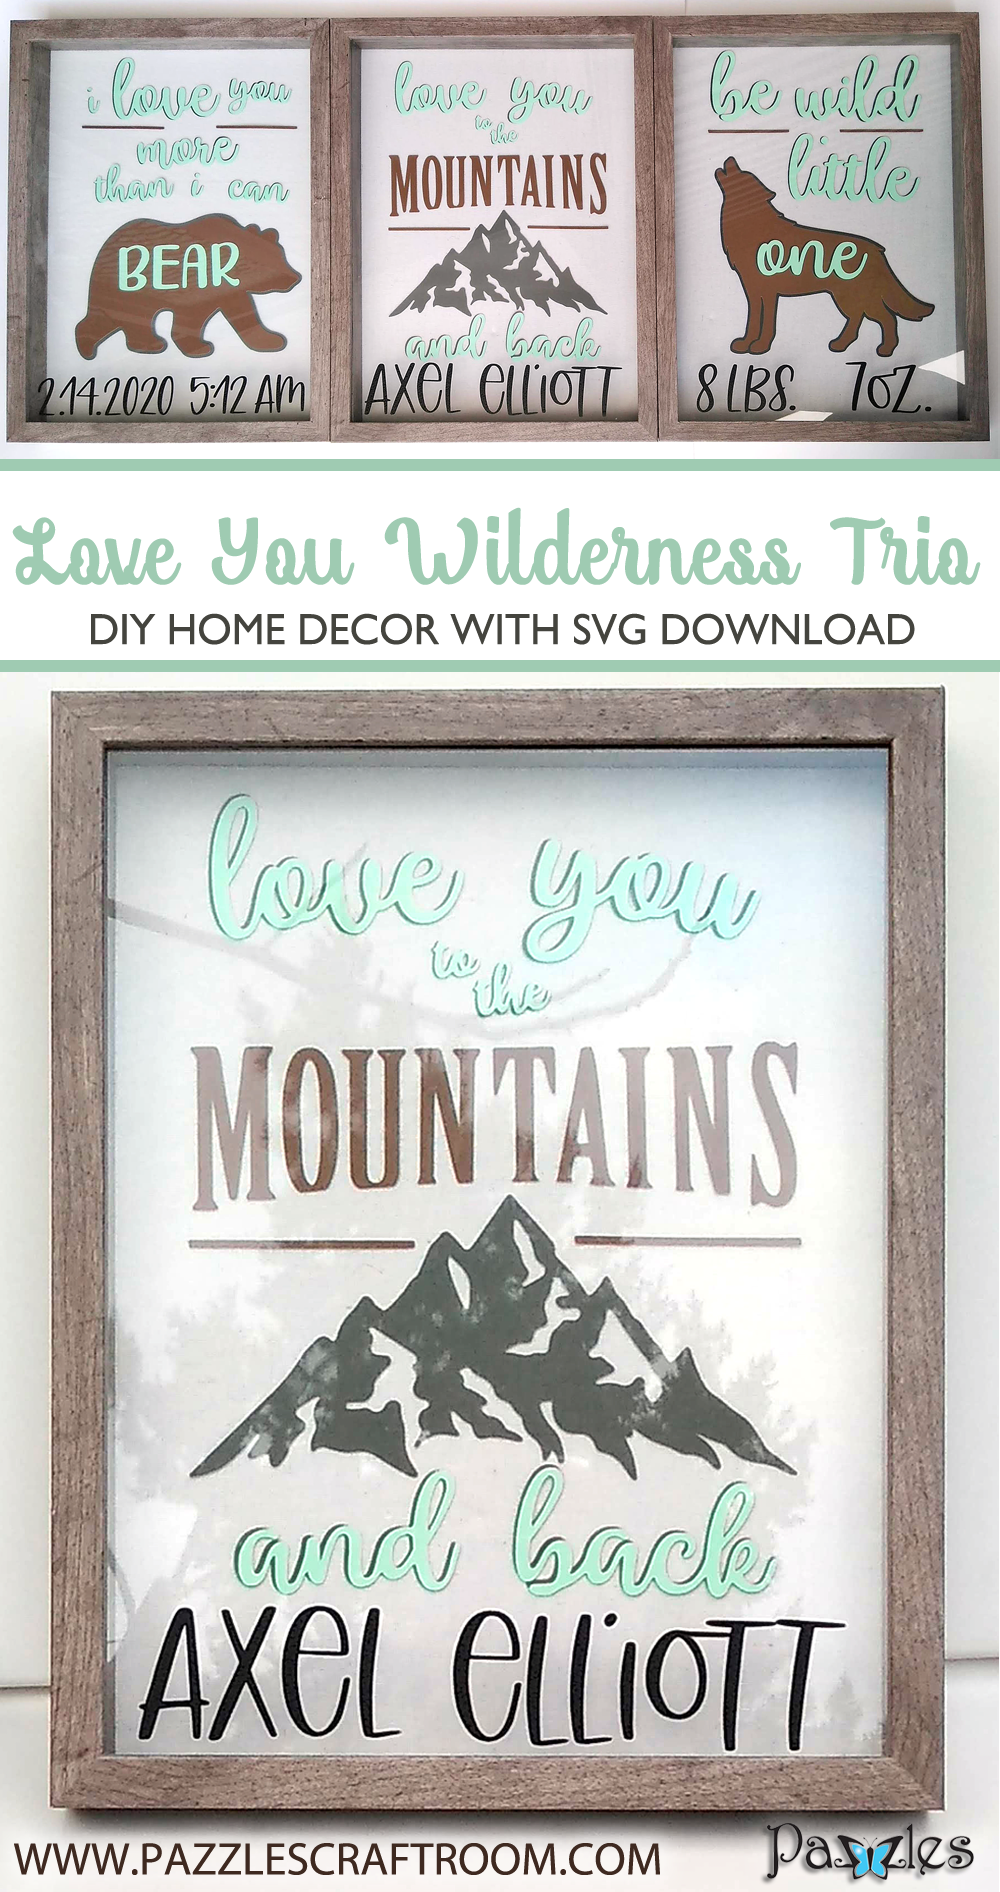 Pazzles DIY Wilderness Wall Trio for nursery with instant SVG download. Compatible with all major electronic cutters including Pazzles Inspiration, Cricut, and Silhouette Cameo. Design by Renee Smart.